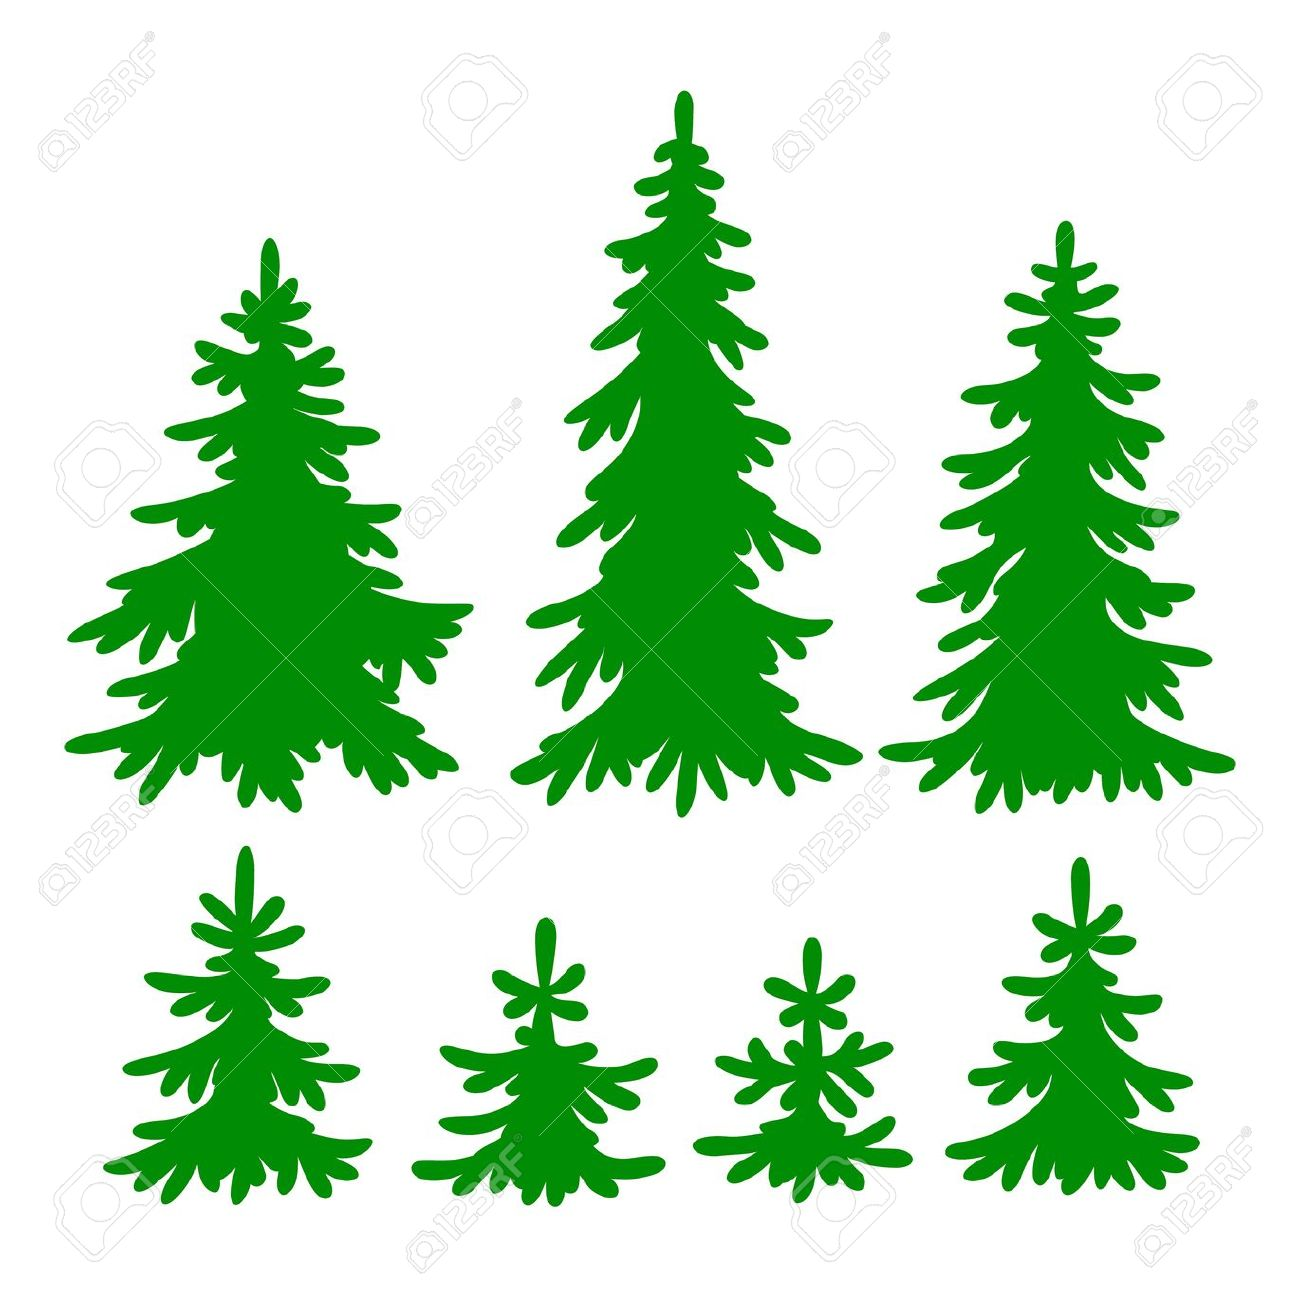 Tall Skinny Christmas Tree Silhouette.Evergreen Tree Clipart Free Download Best Evergreen Tree